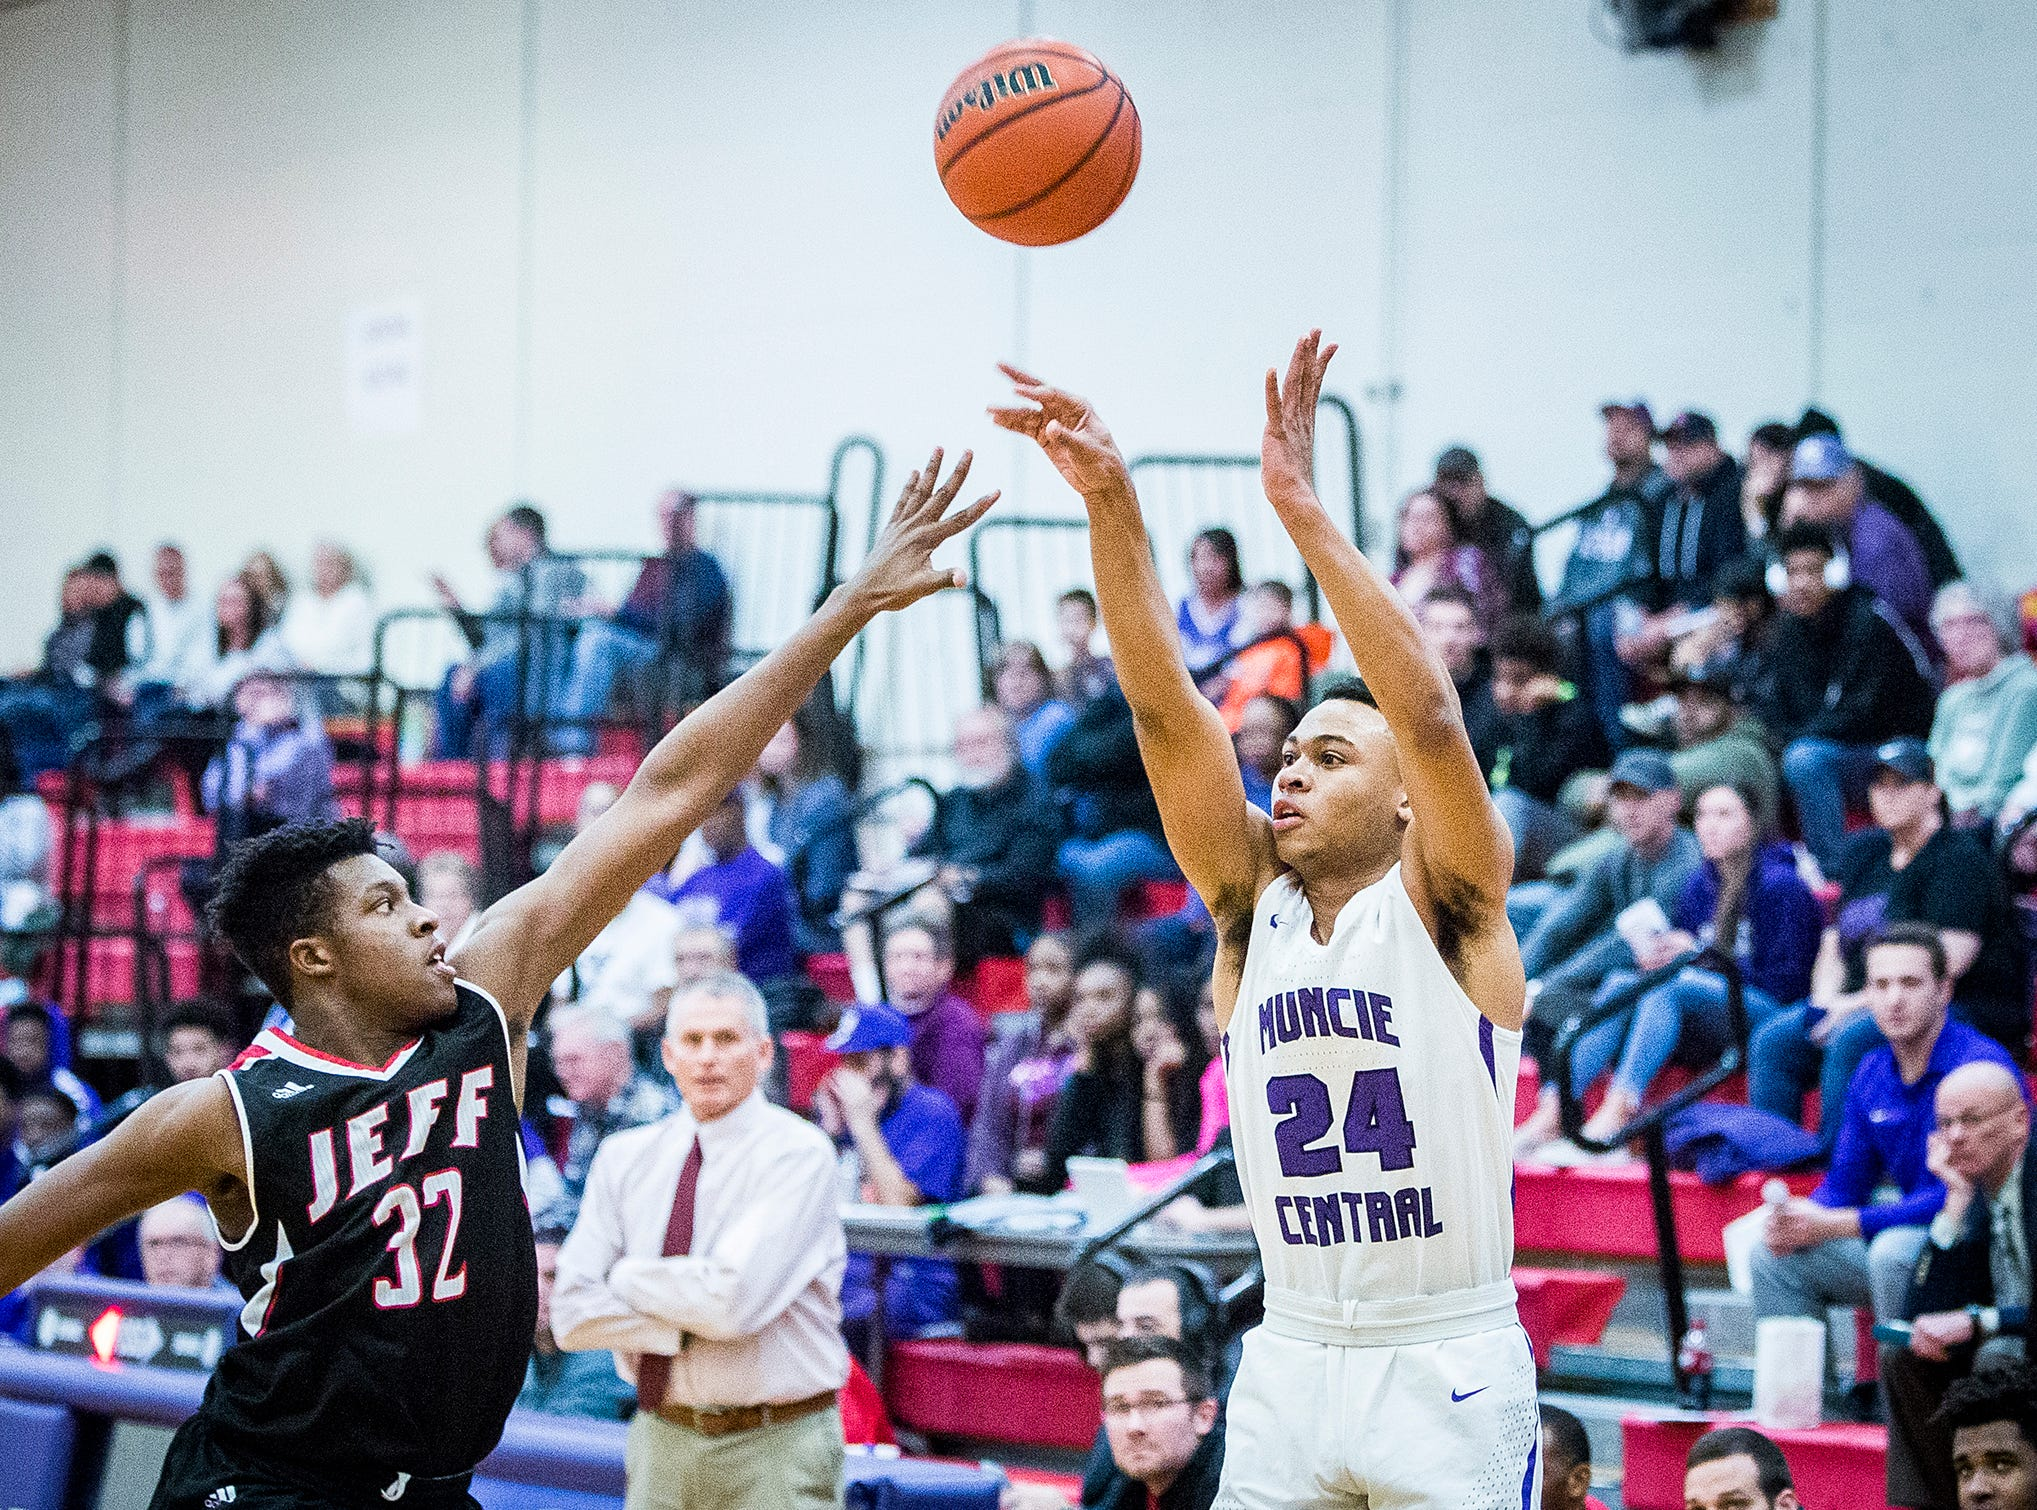 Central's Victor Young shoots past Lafayette Jefferson's defense during their game at Southside Middle School Friday, Jan. 4, 2019.